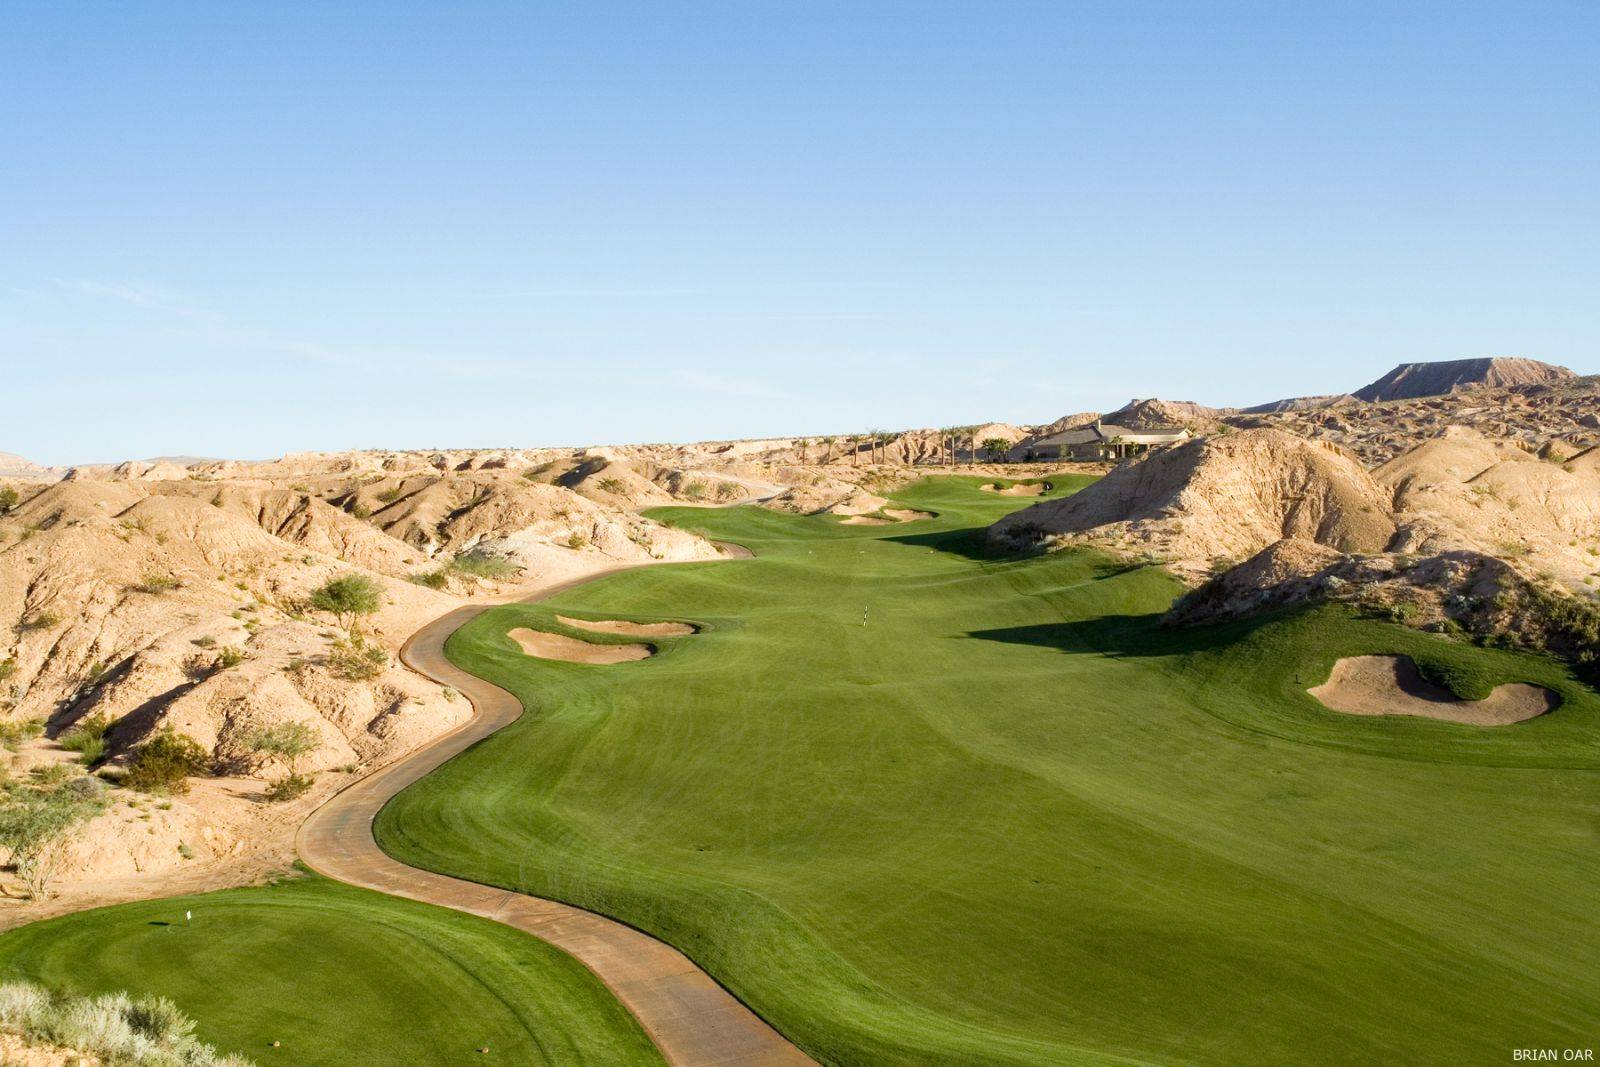 The Canyons Course at Oasis Golf Club